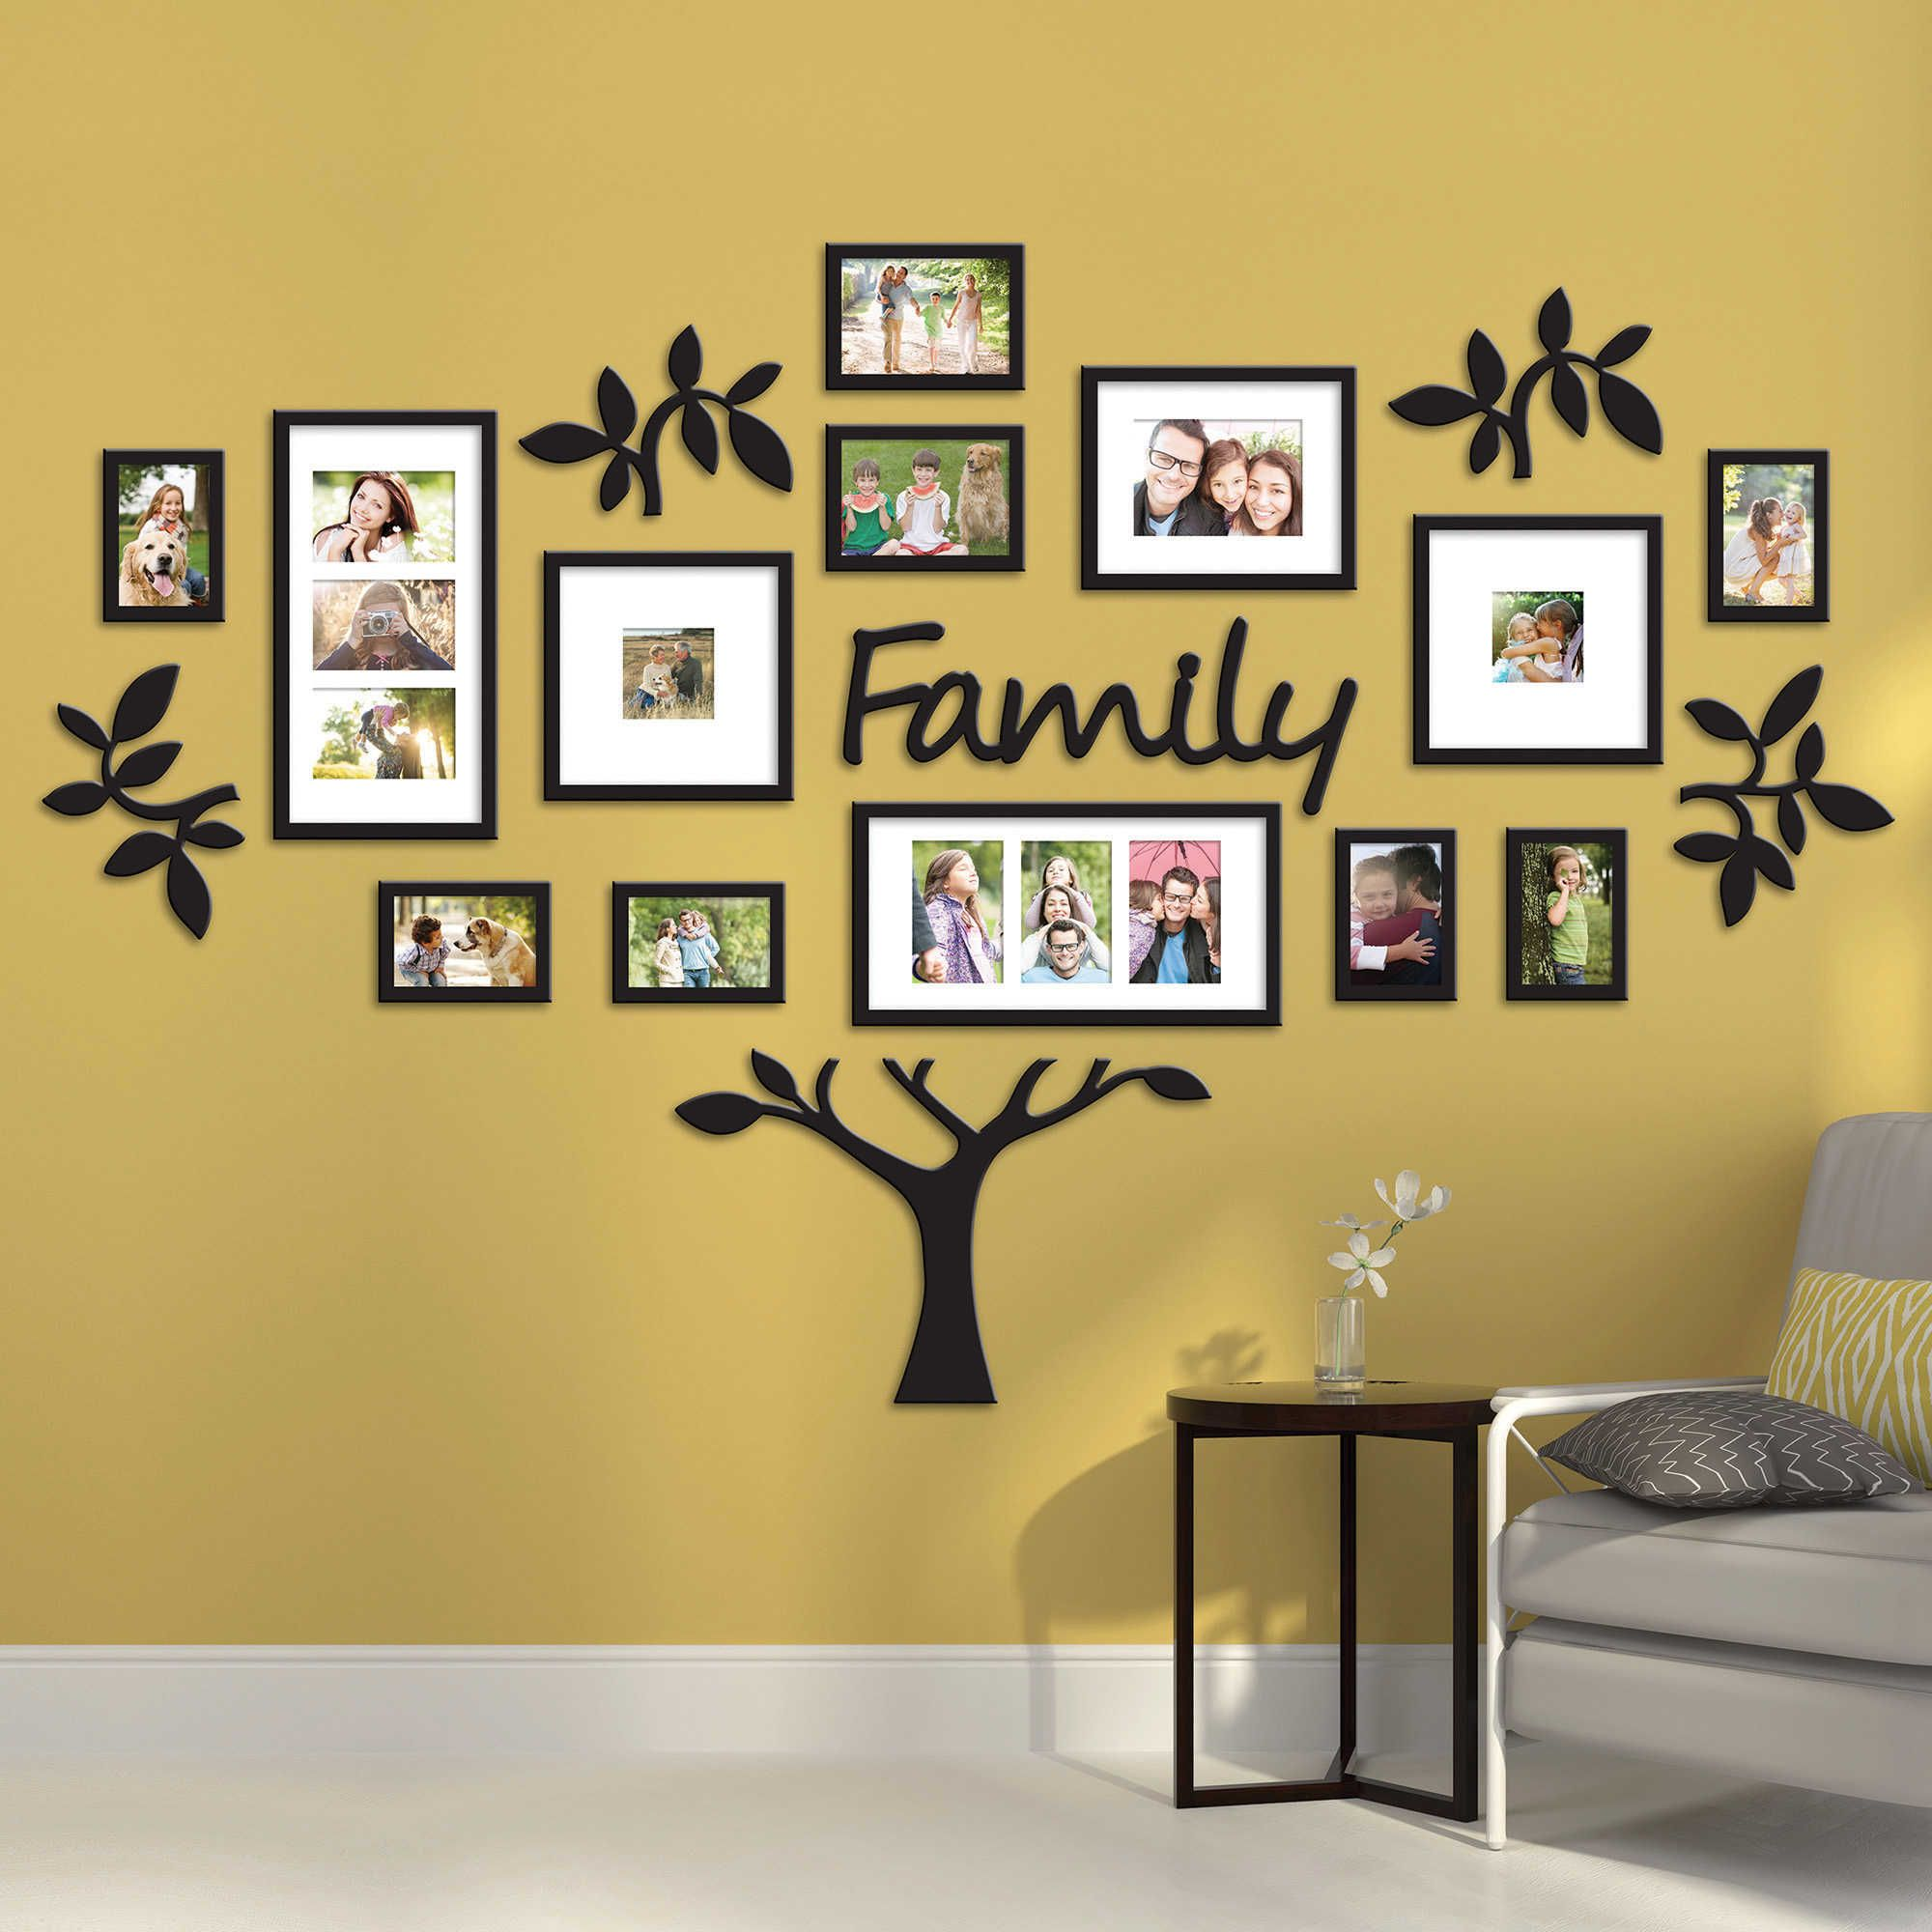 Family Wall Decor Wallverbs™ 19Piece Family Tree Set  Home Decor Inspiration